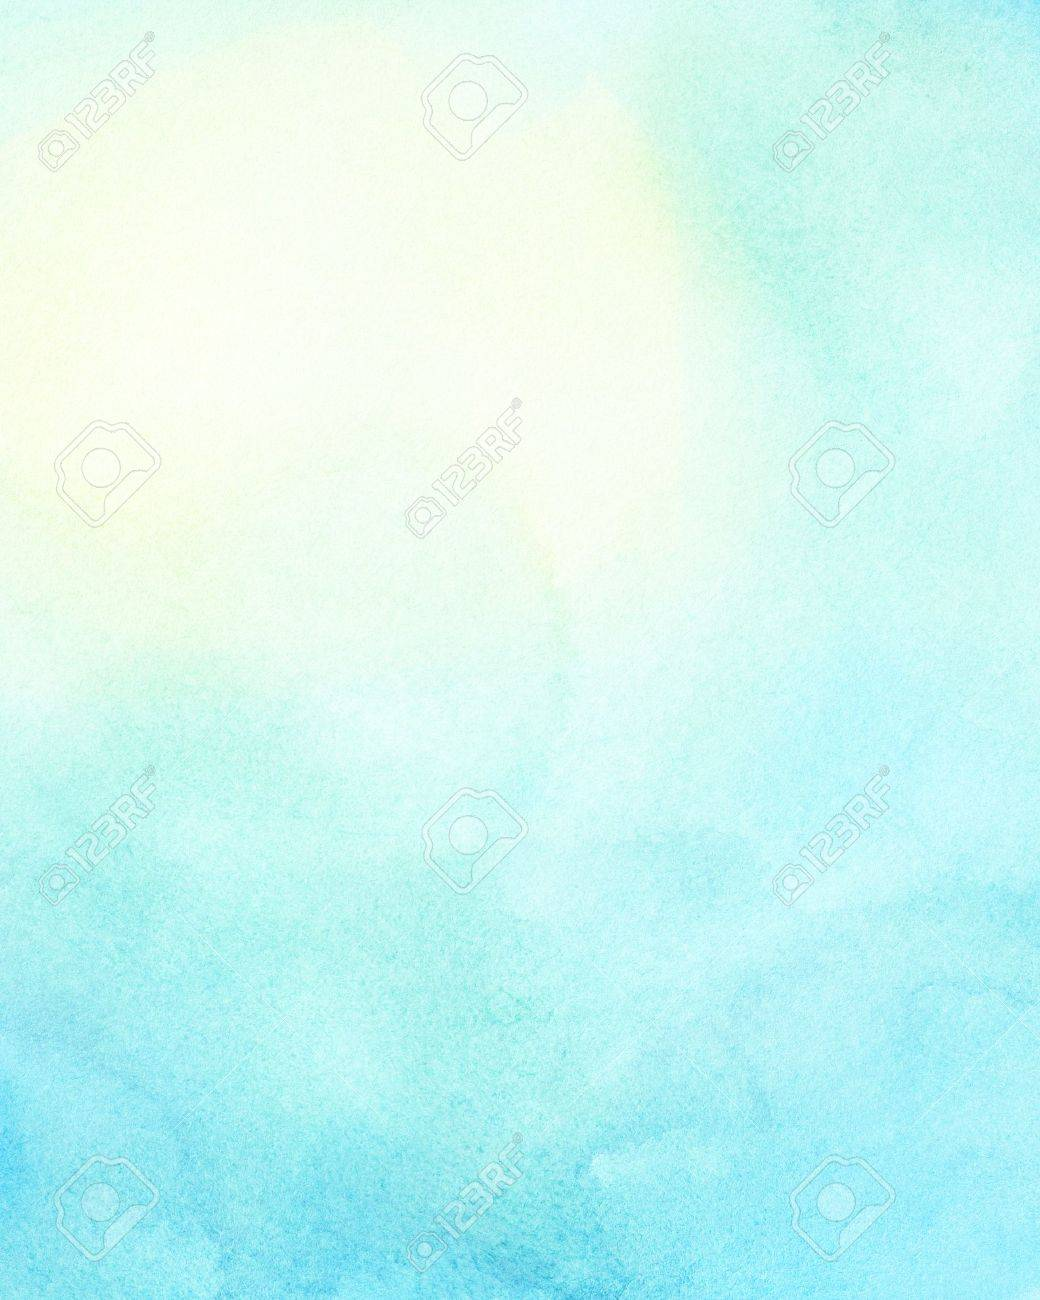 Abstract watercolor background. Stock Photo - 13268383